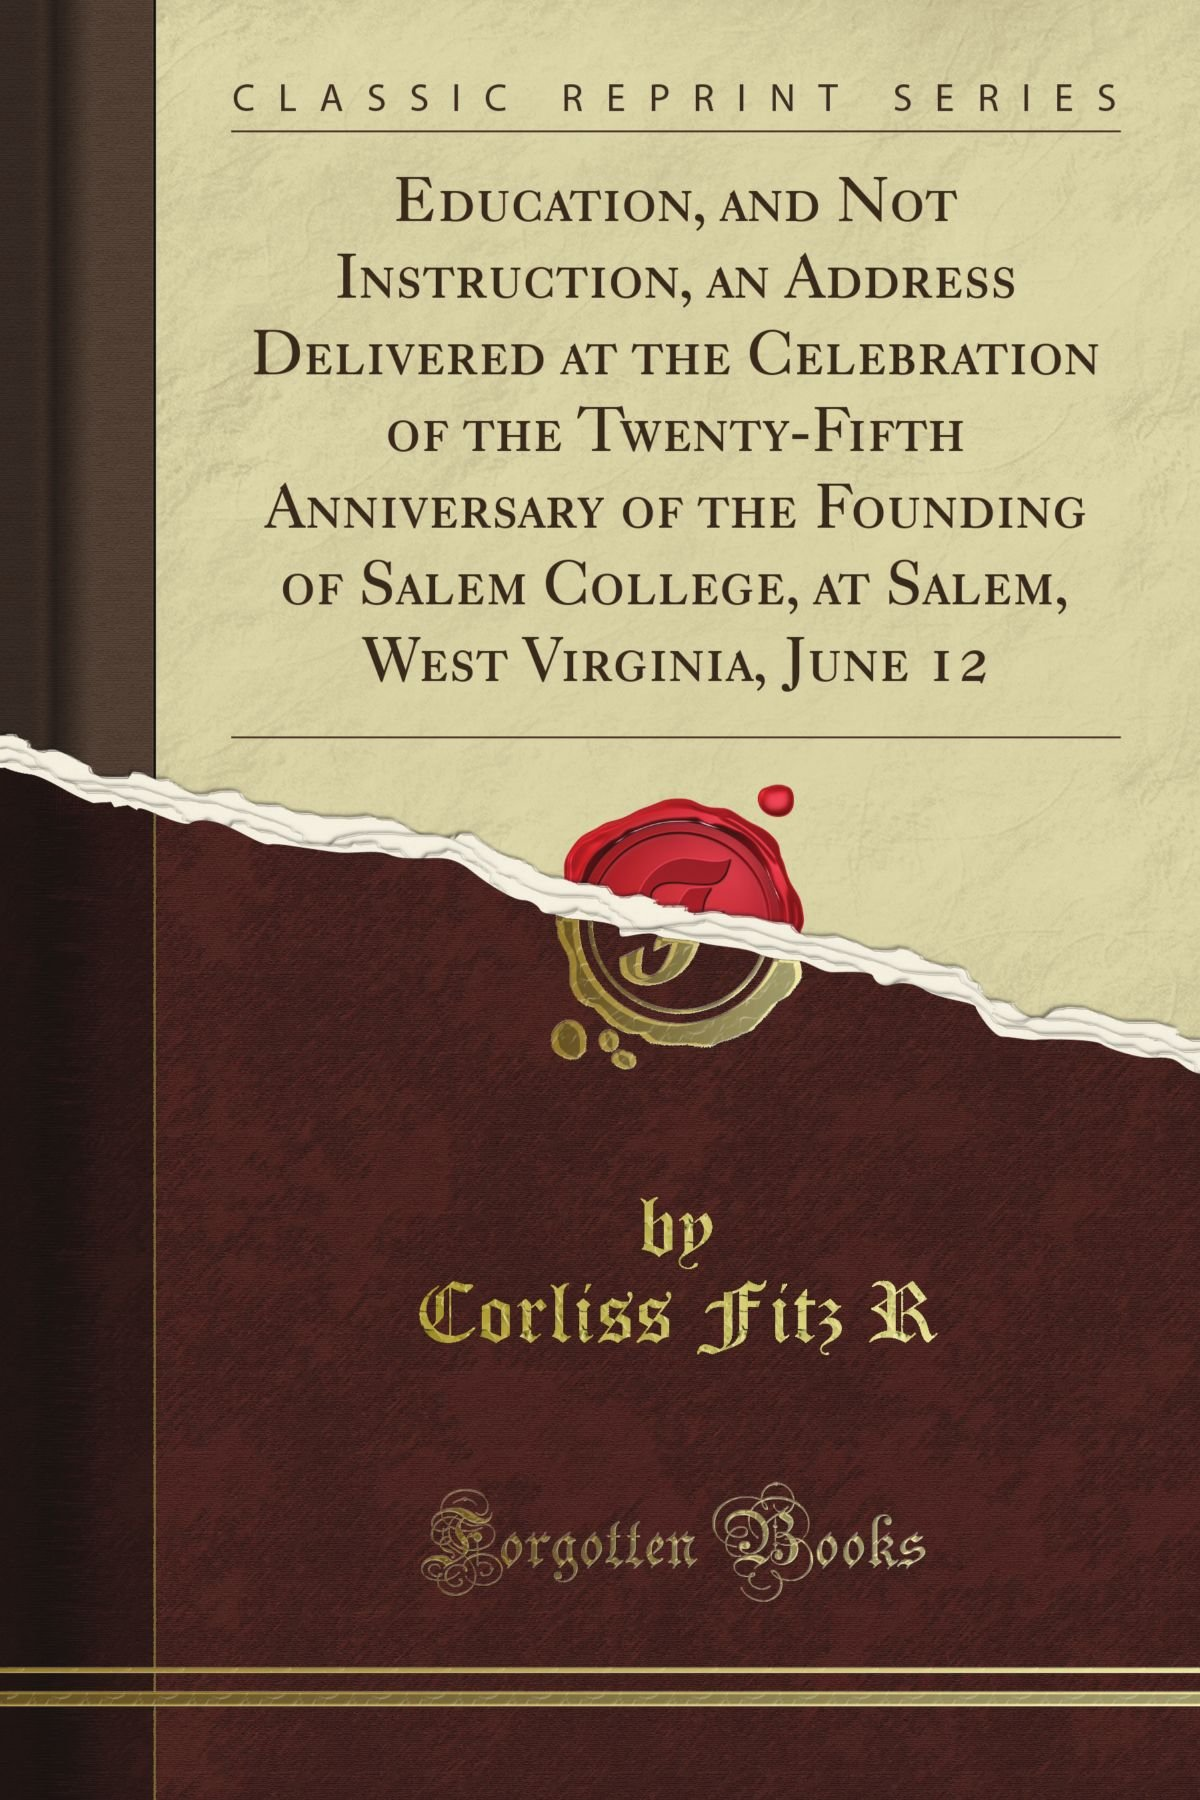 Download Education, and Not Instruction, an Address Delivered at the Celebration of the Twenty-Fifth Anniversary of the Founding of Salem College, at Salem, West Virginia, June 12 (Classic Reprint) pdf